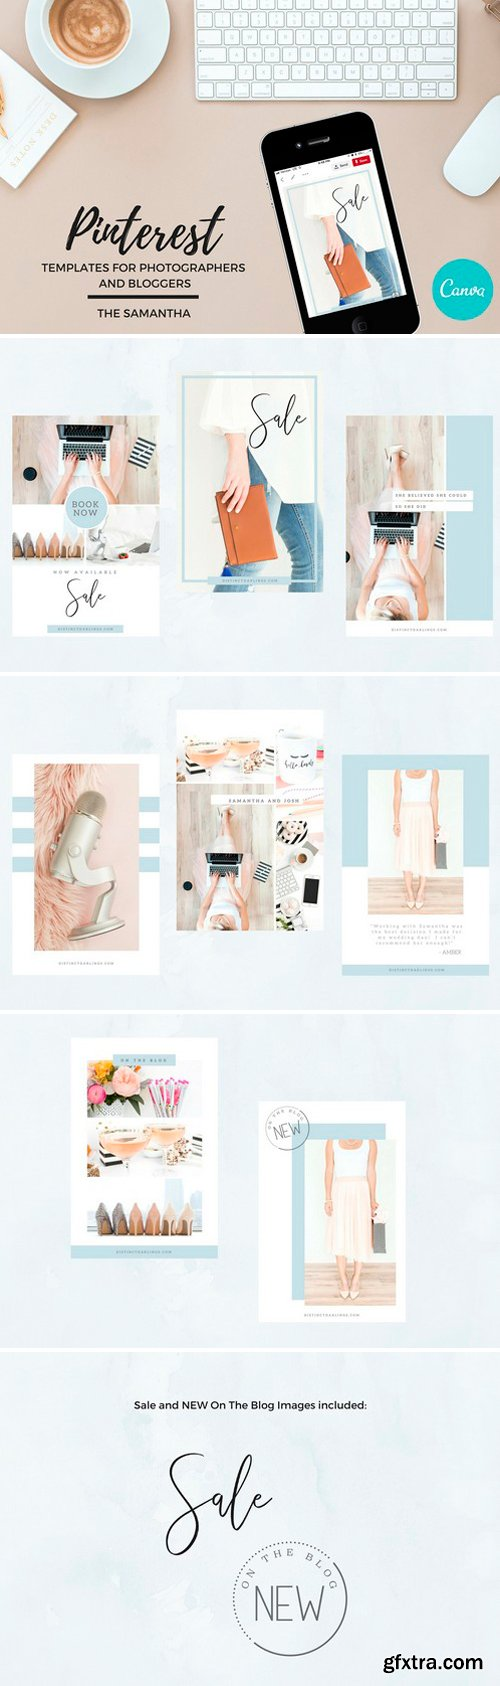 CM - Pinterest Templates for Canva 2545140